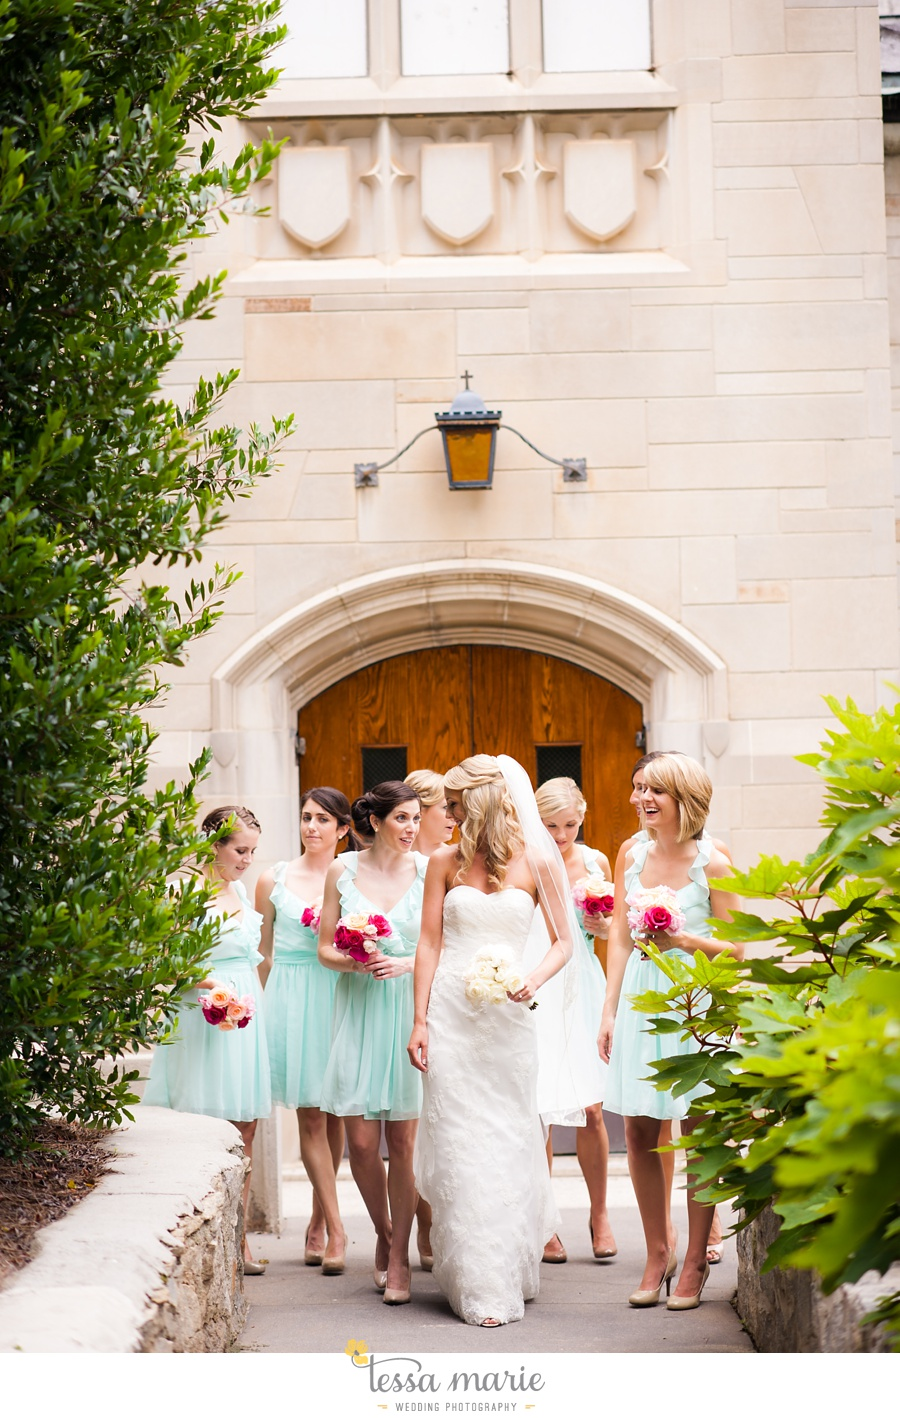 christ_the_king_wedding_pictures_Villa_christina_wedding_tessa_marie_weddings_0032